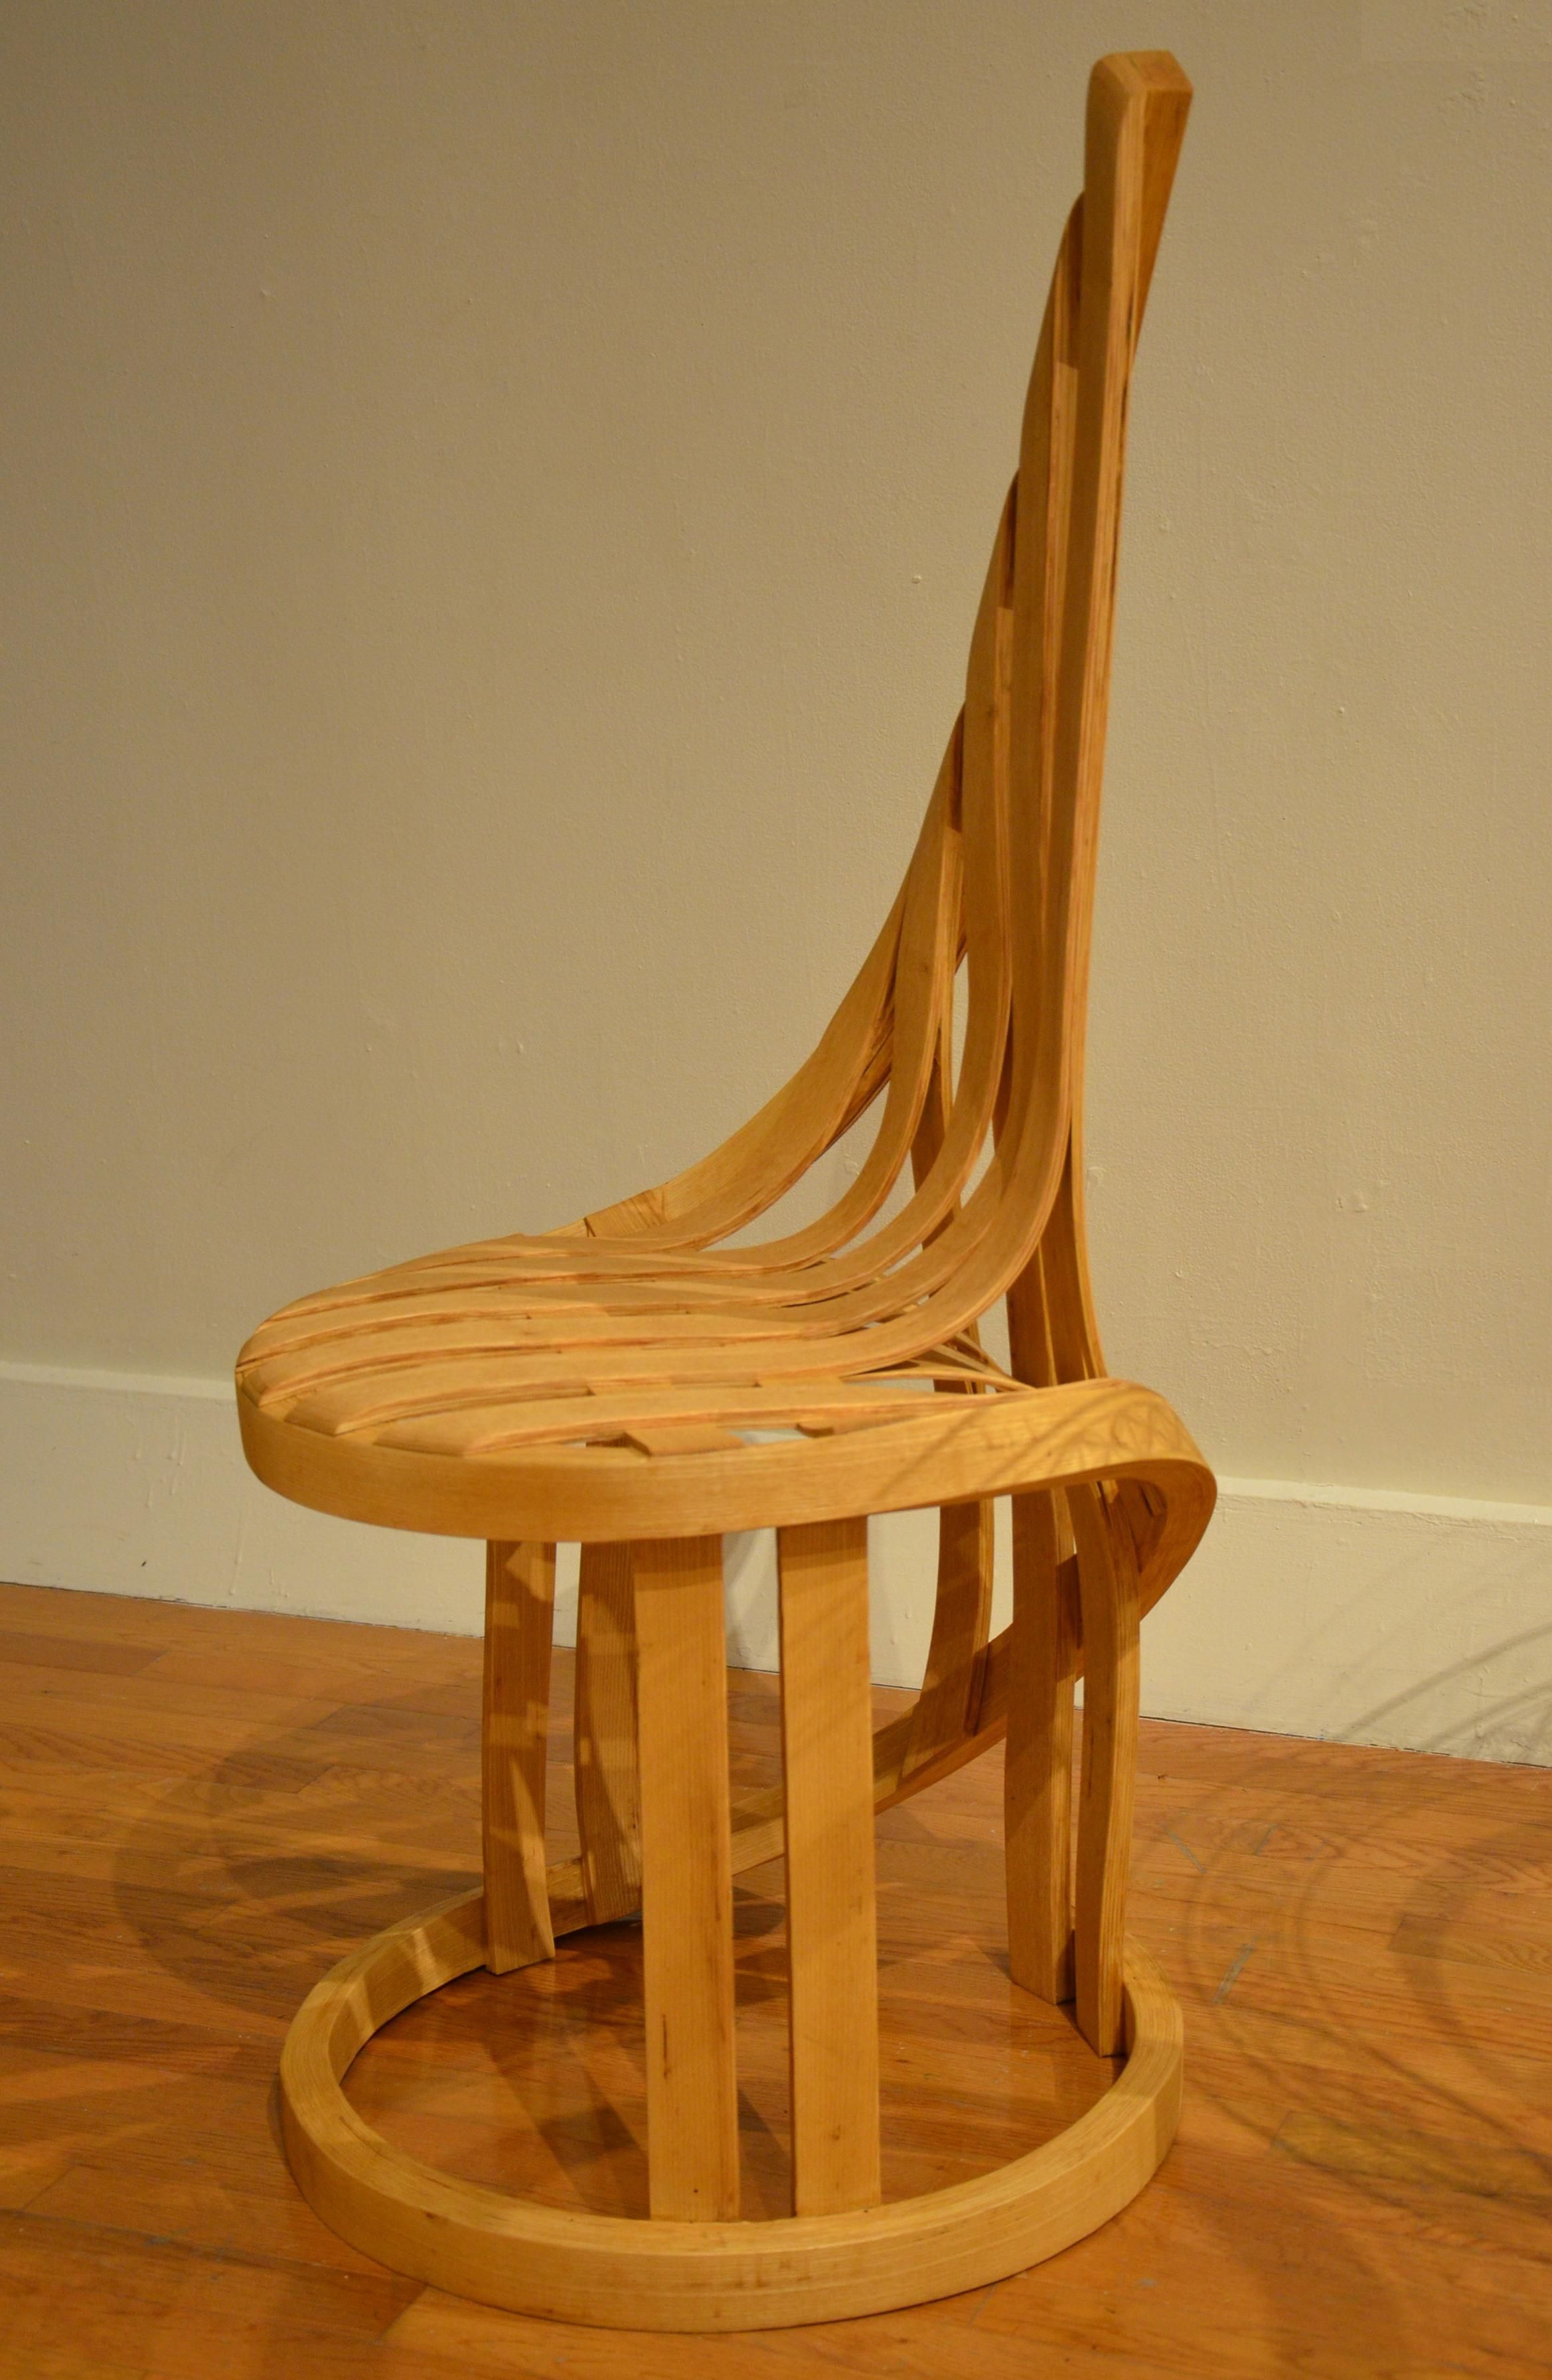 Mānoa Chair by Architecture doctoral candidate wins